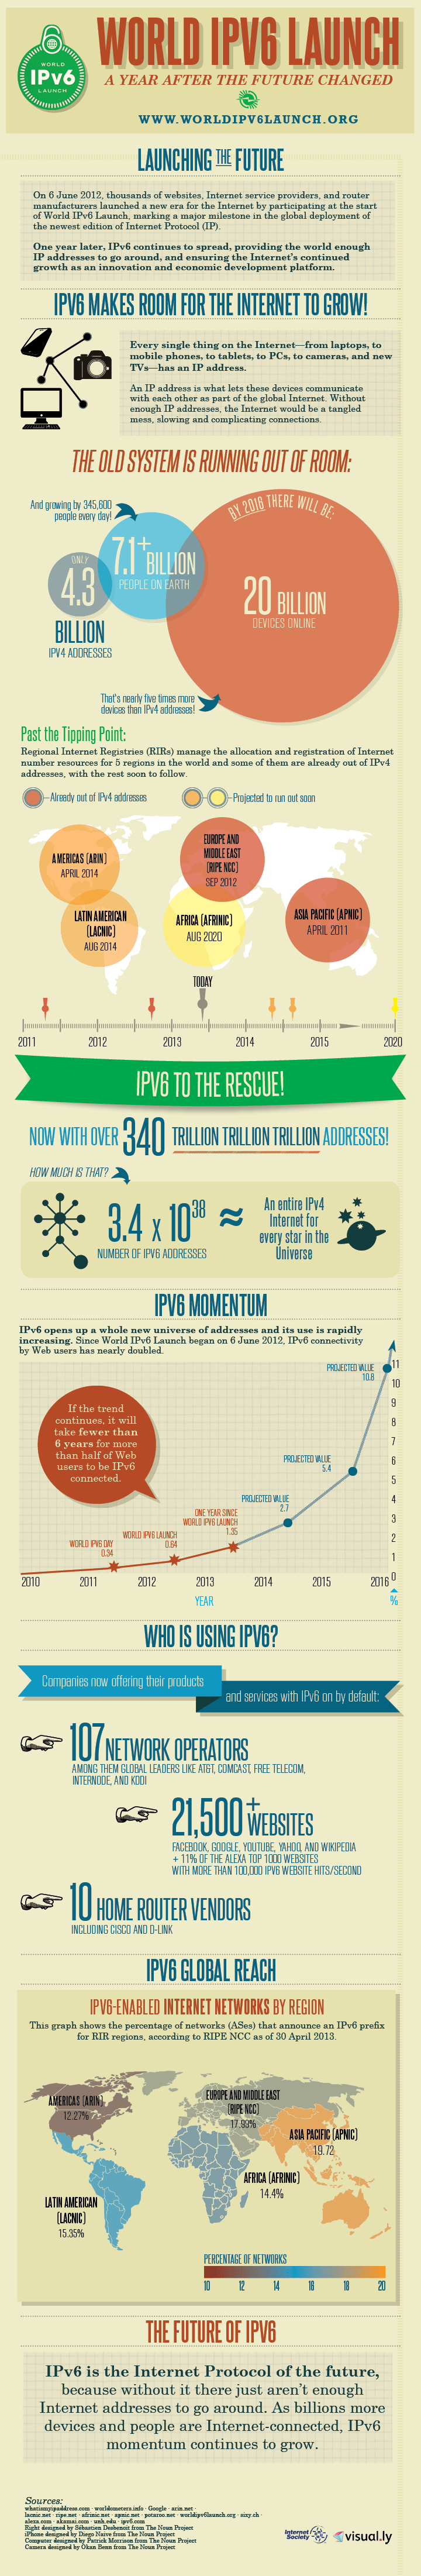 ipv6-launchiversary